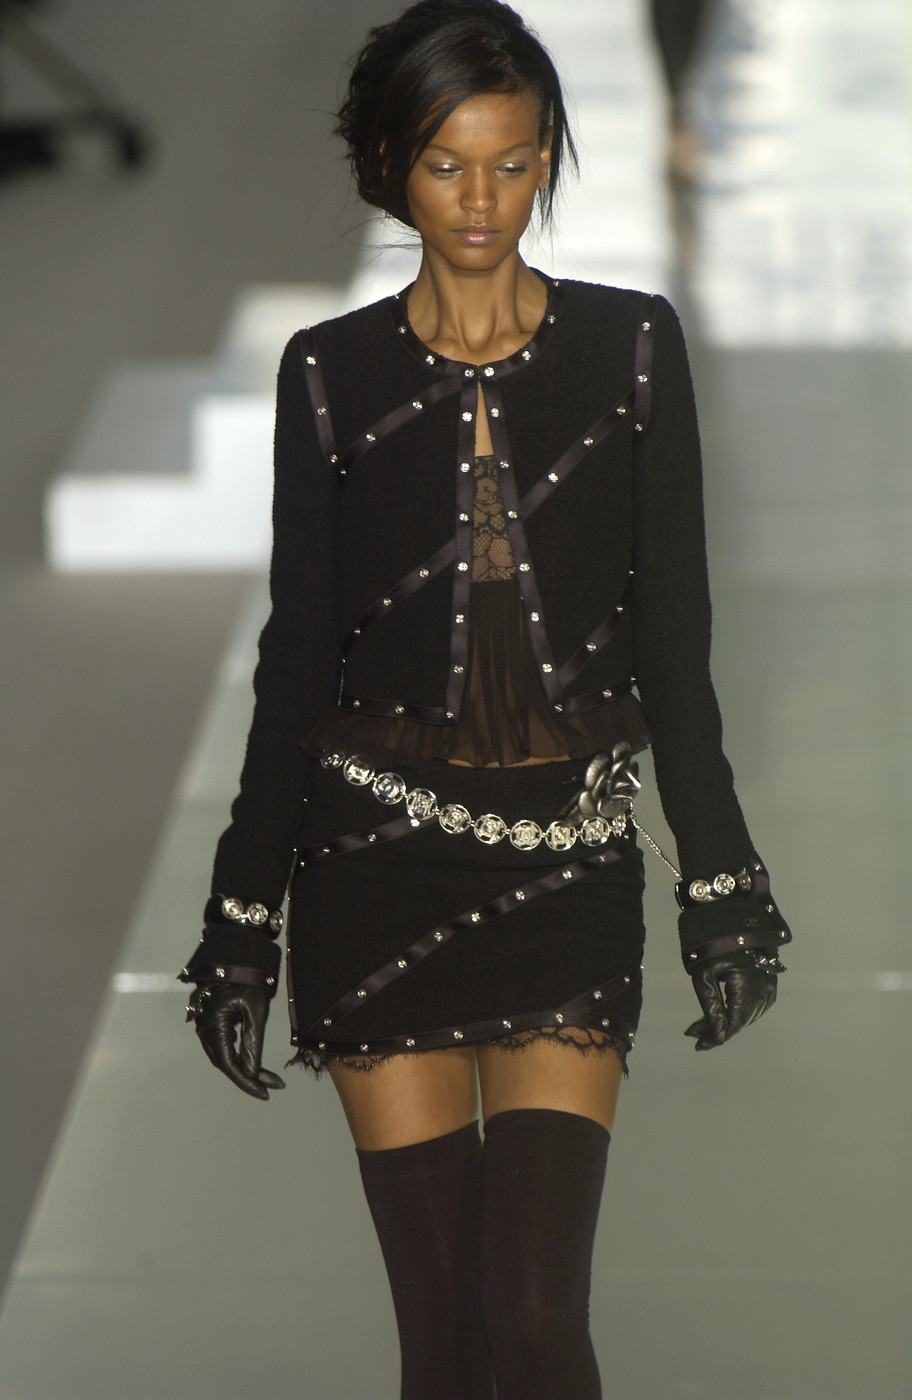 Chanel Fall 2003 Runway Pictures